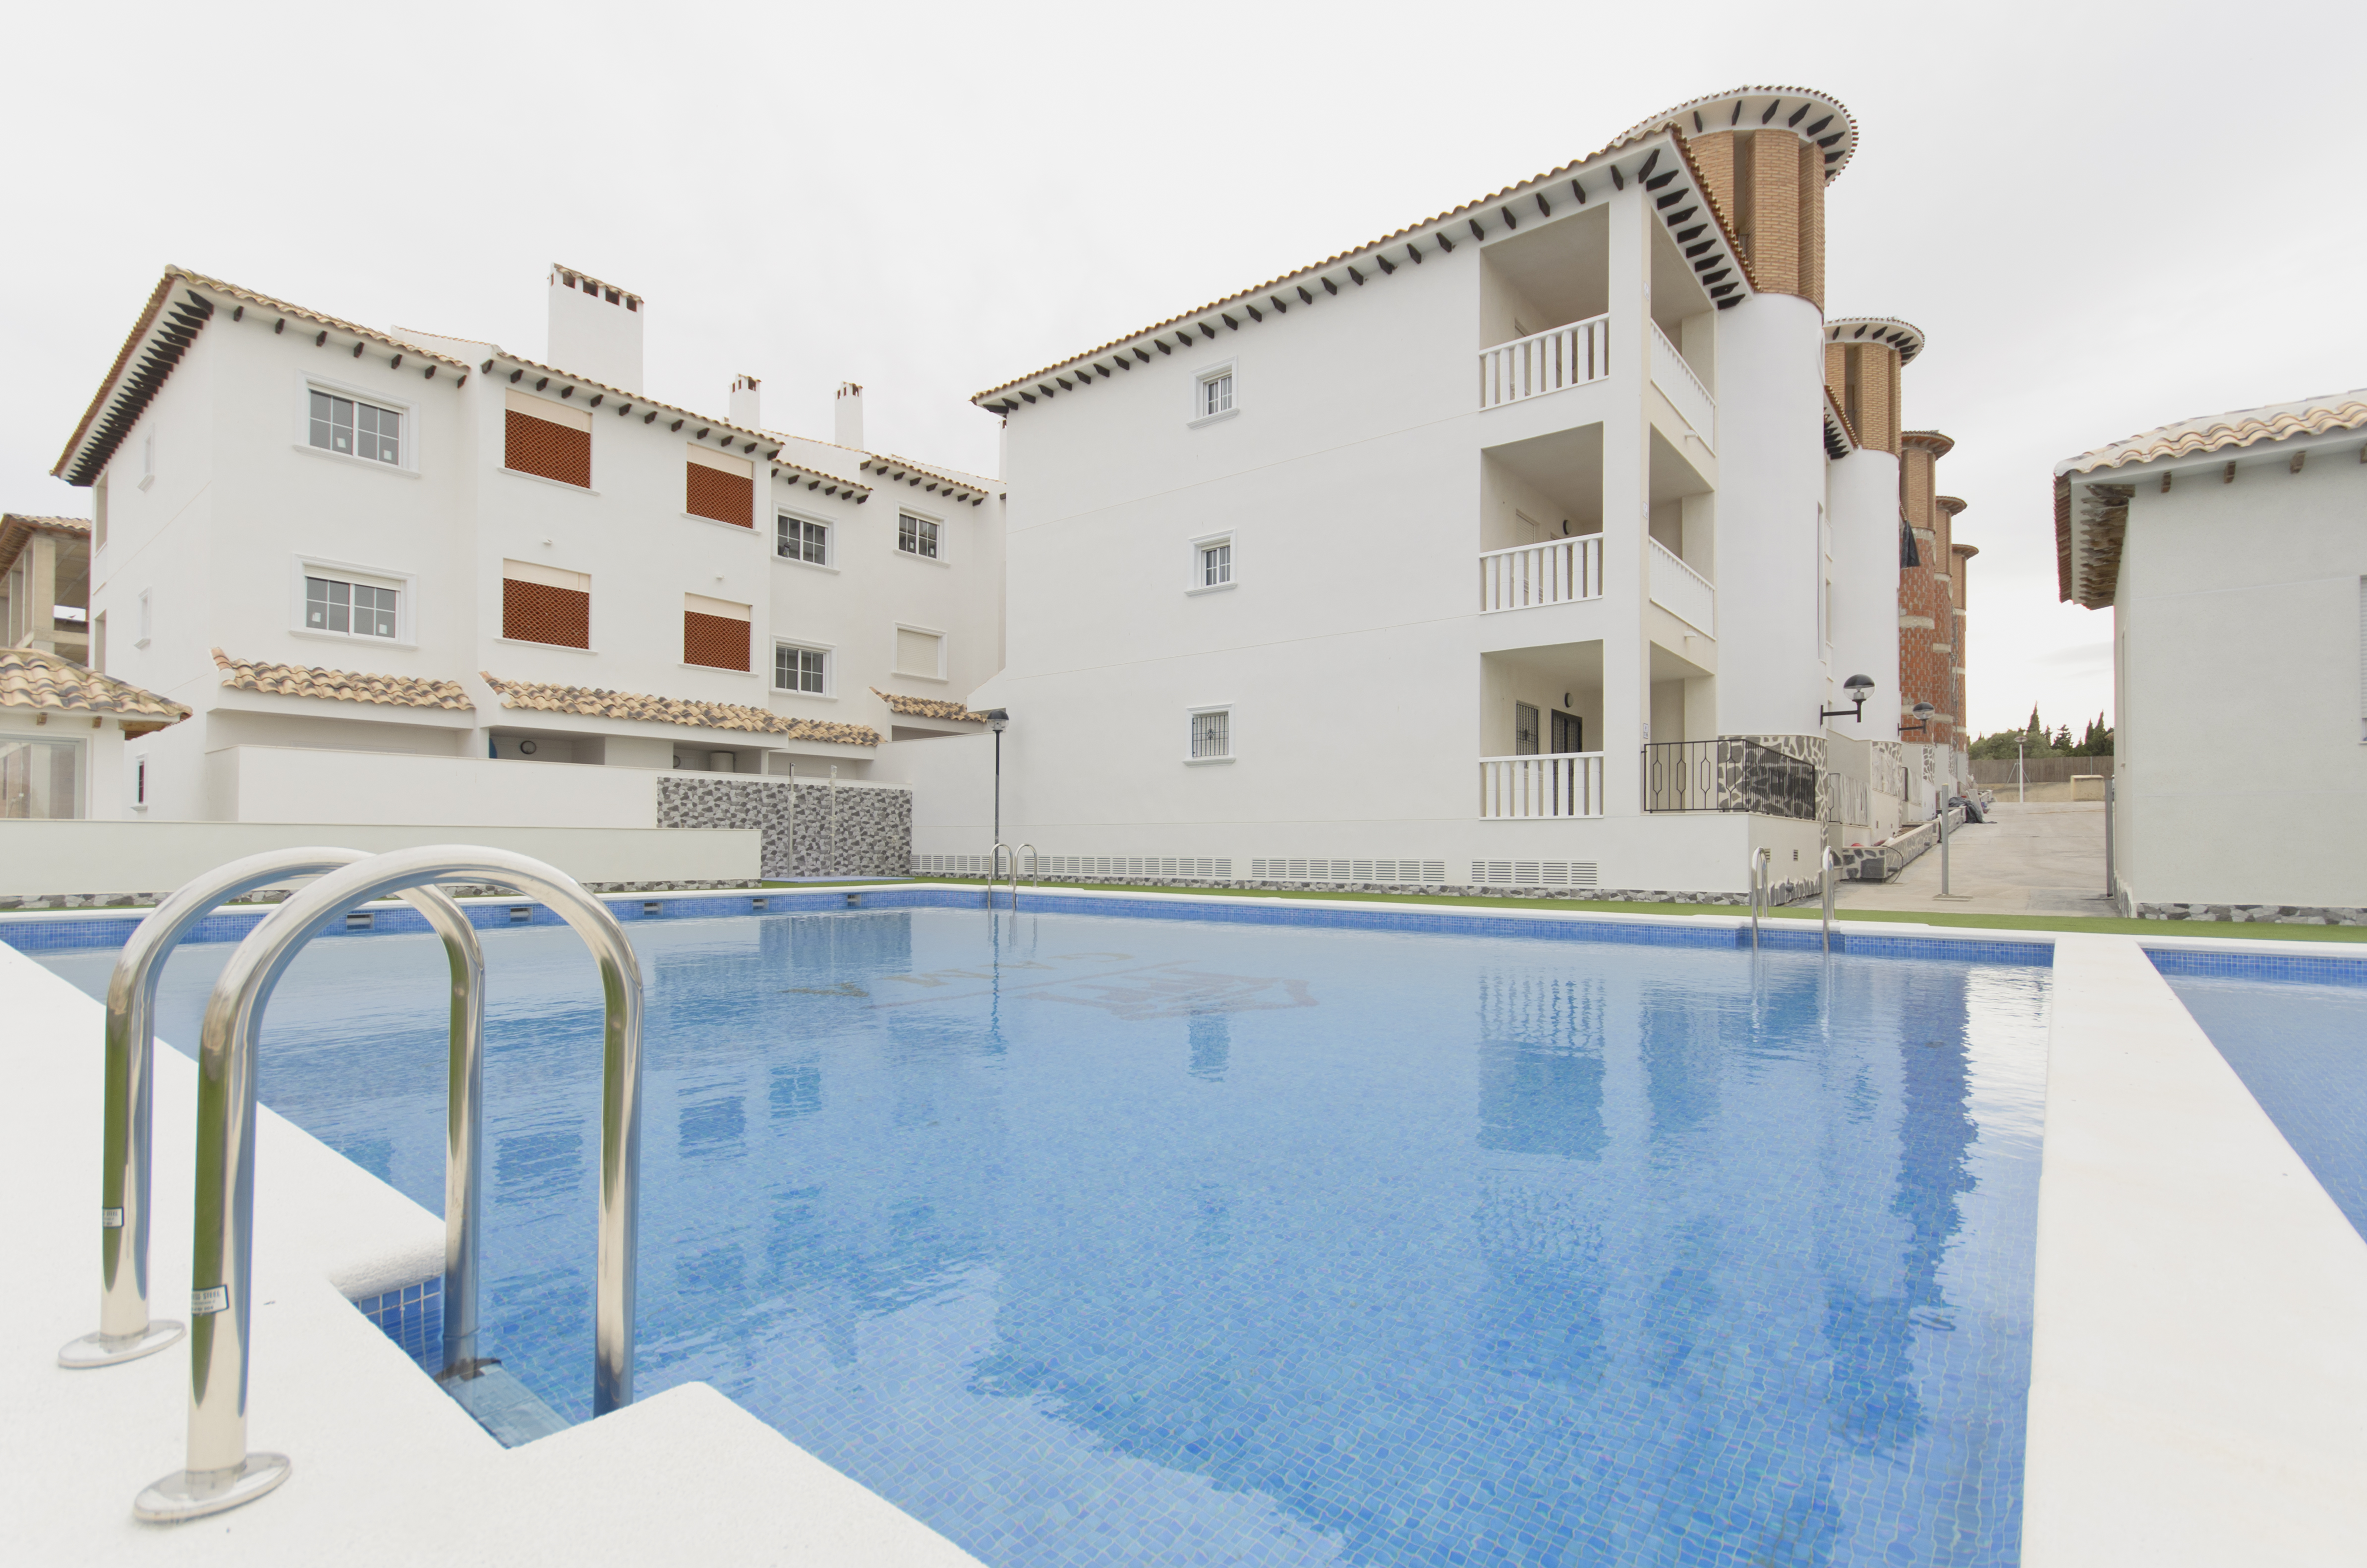 2 bedroom apartment For Sale in La Marina - Main Image